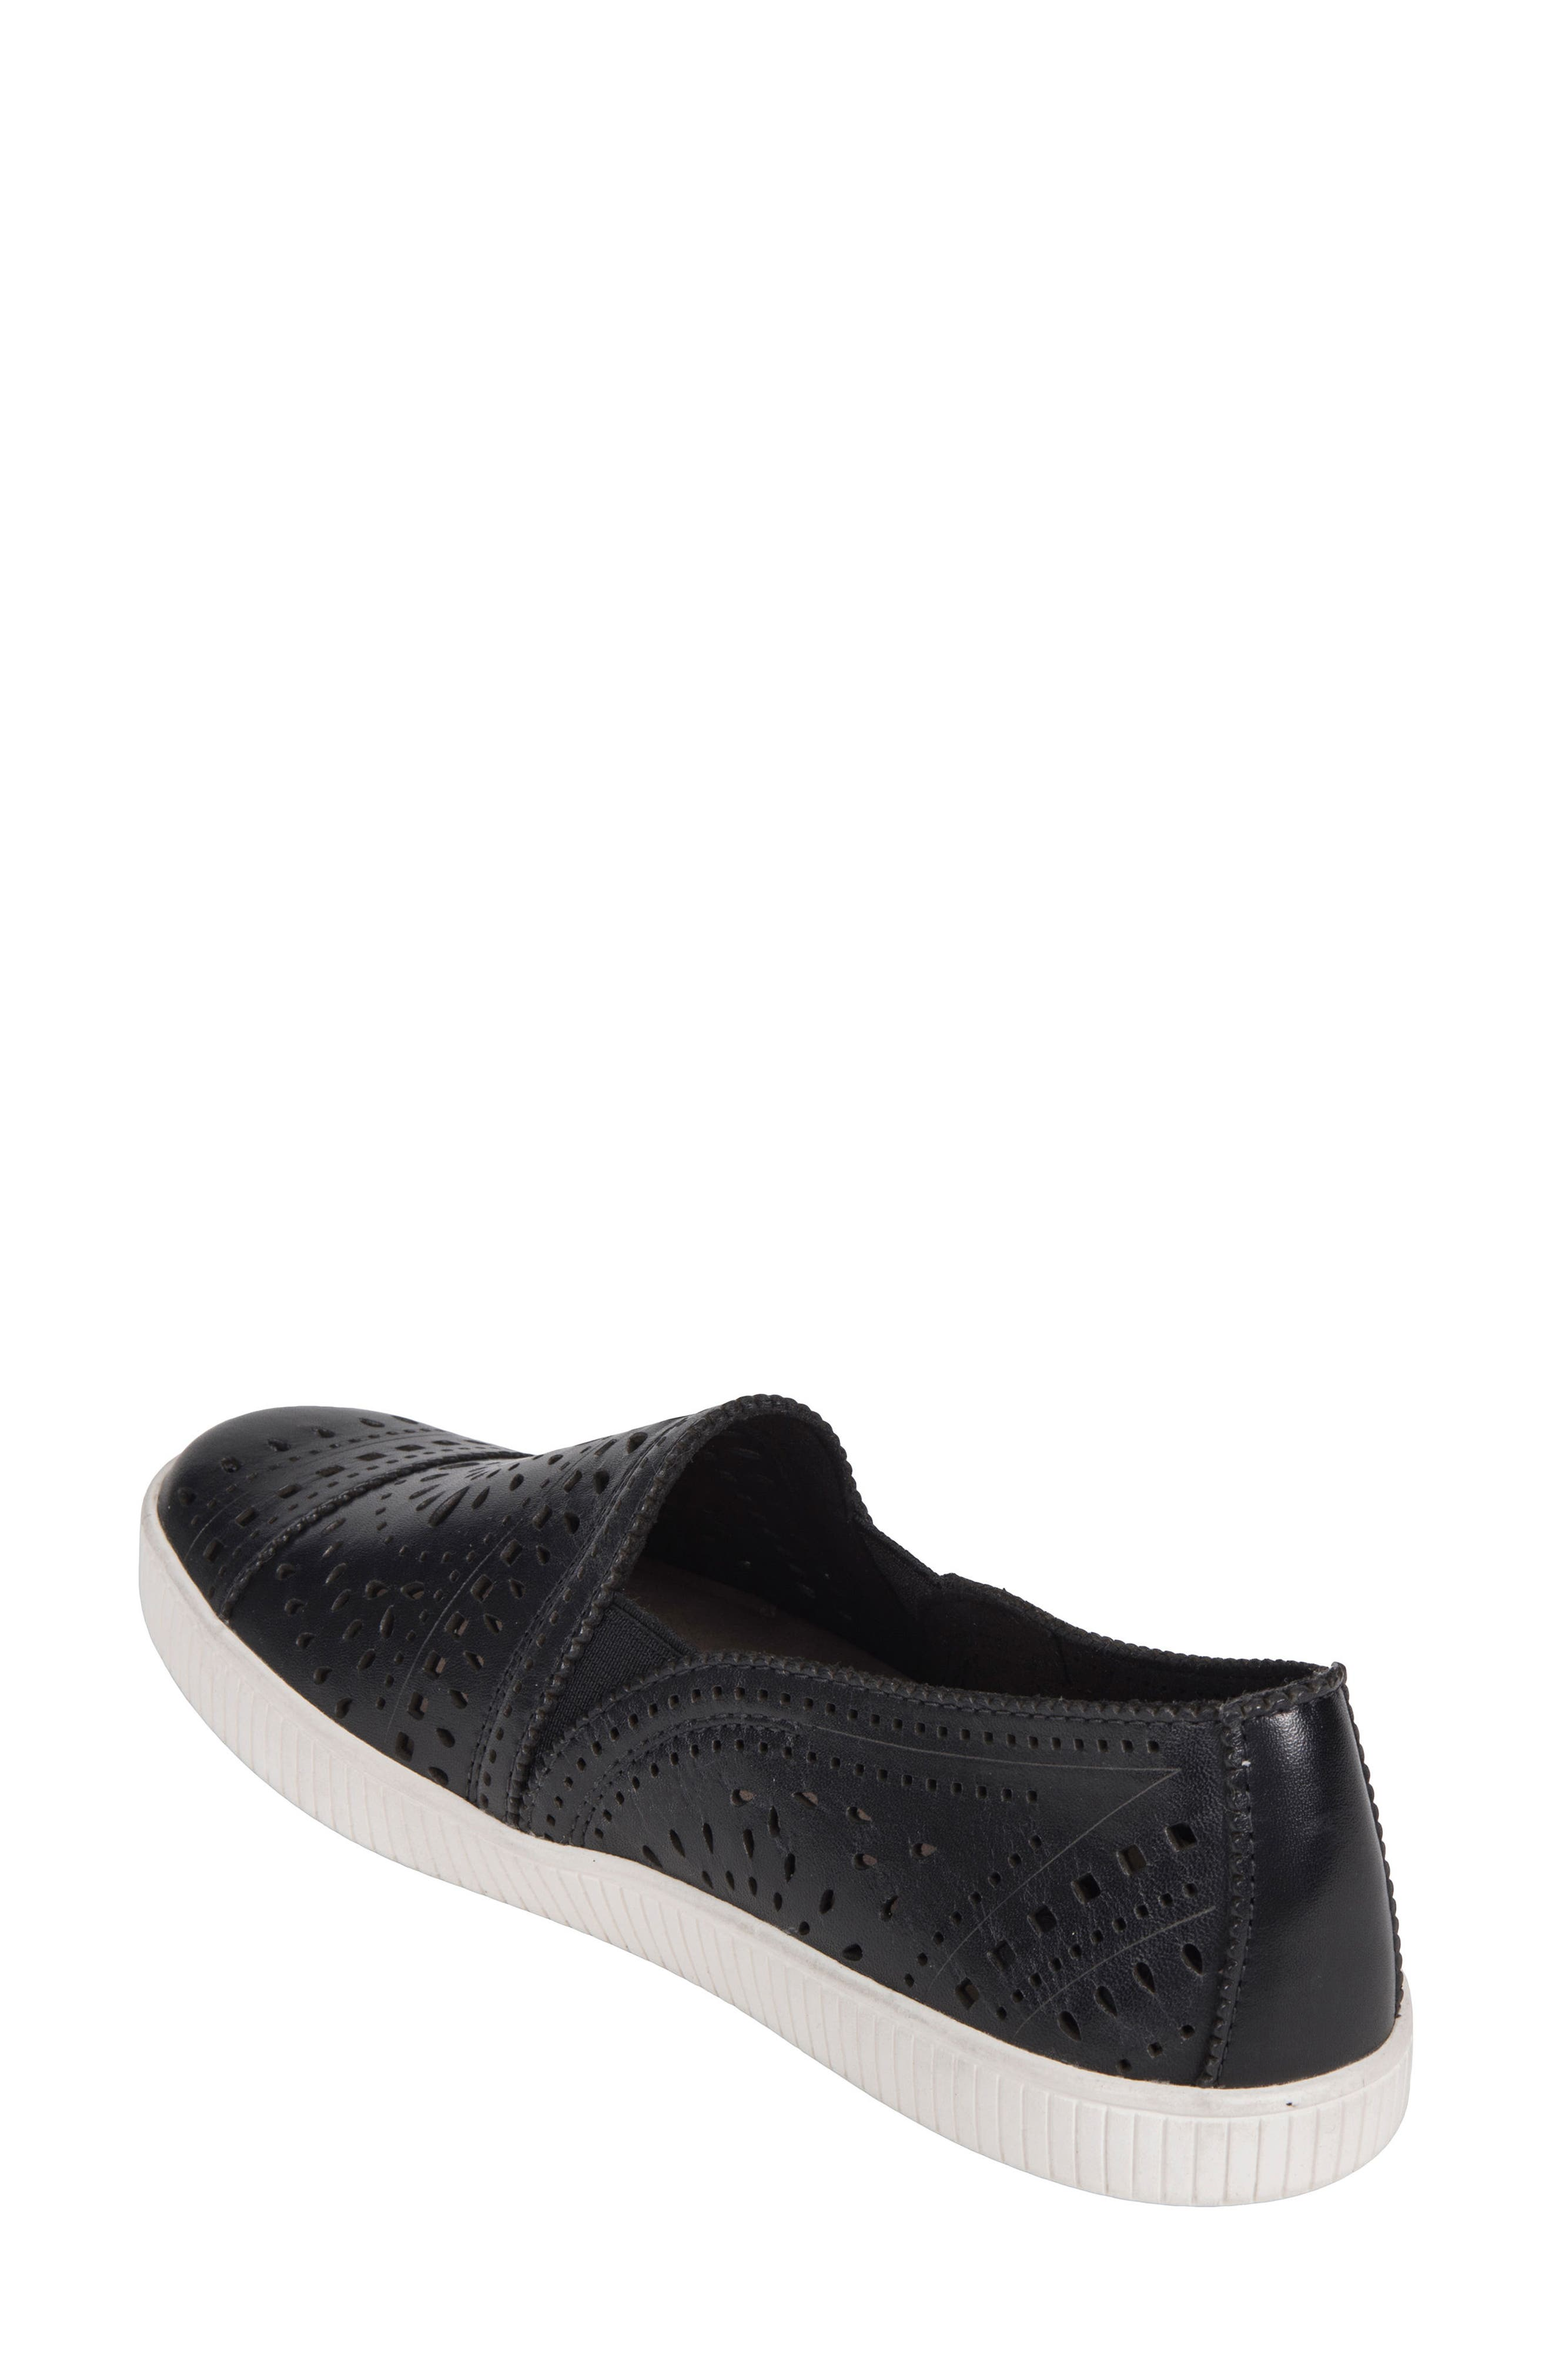 Tayberry Perforated Slip-On Sneaker,                             Alternate thumbnail 2, color,                             001